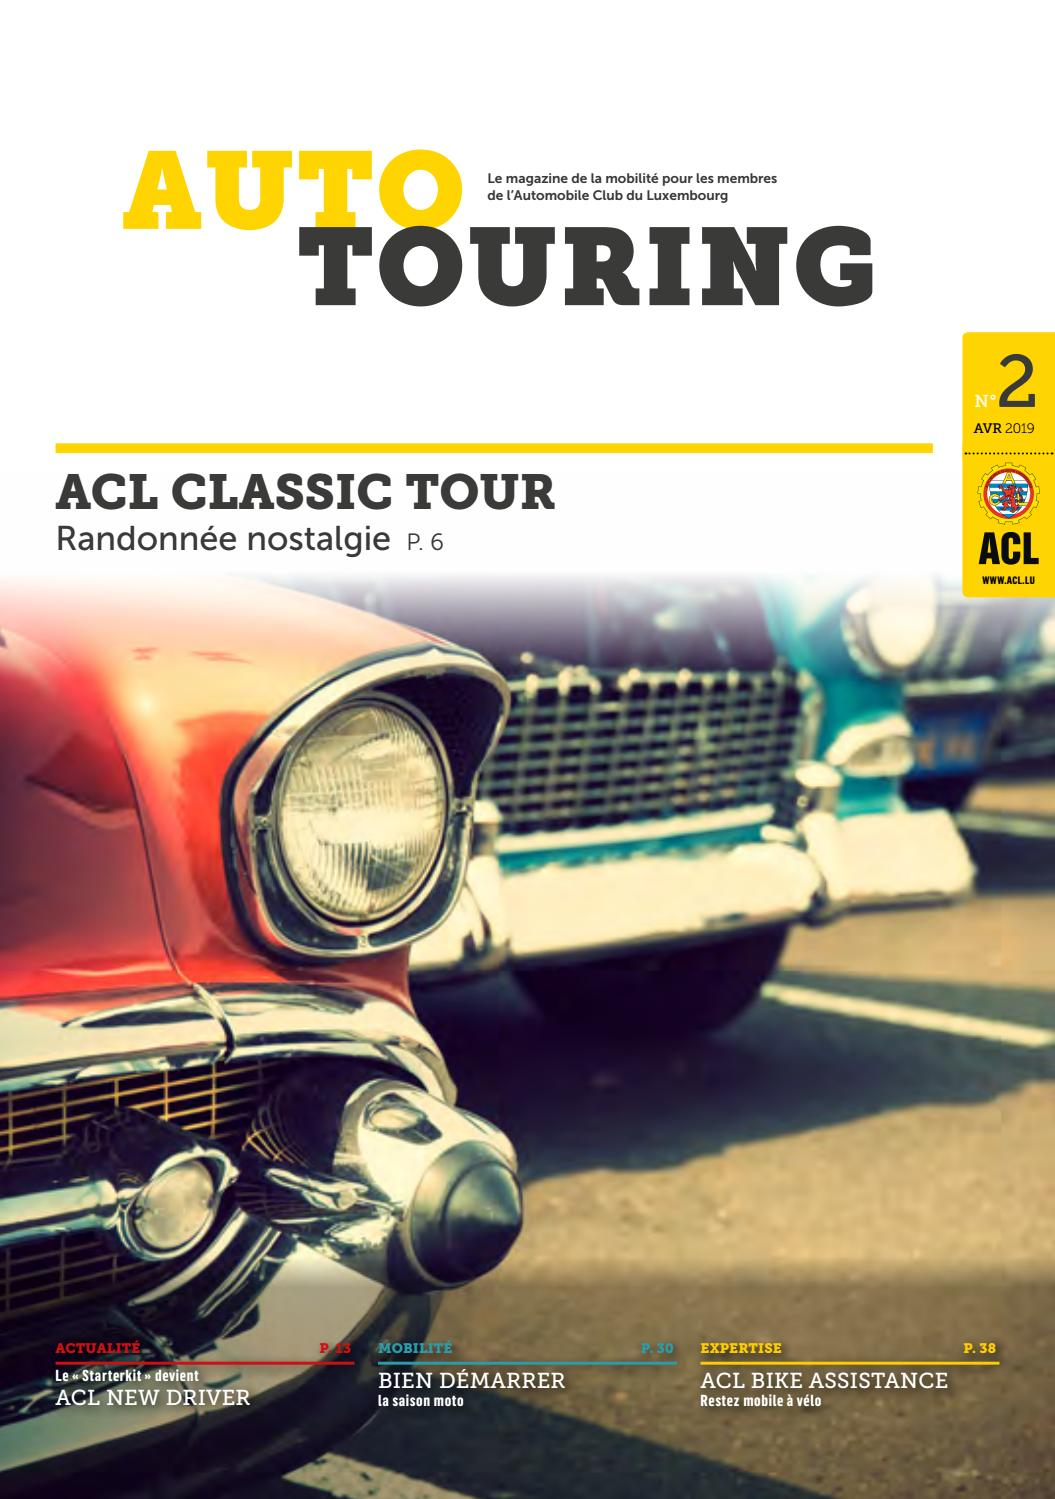 Avril 2019 By Issuu Autotouring Acl htCsQrd